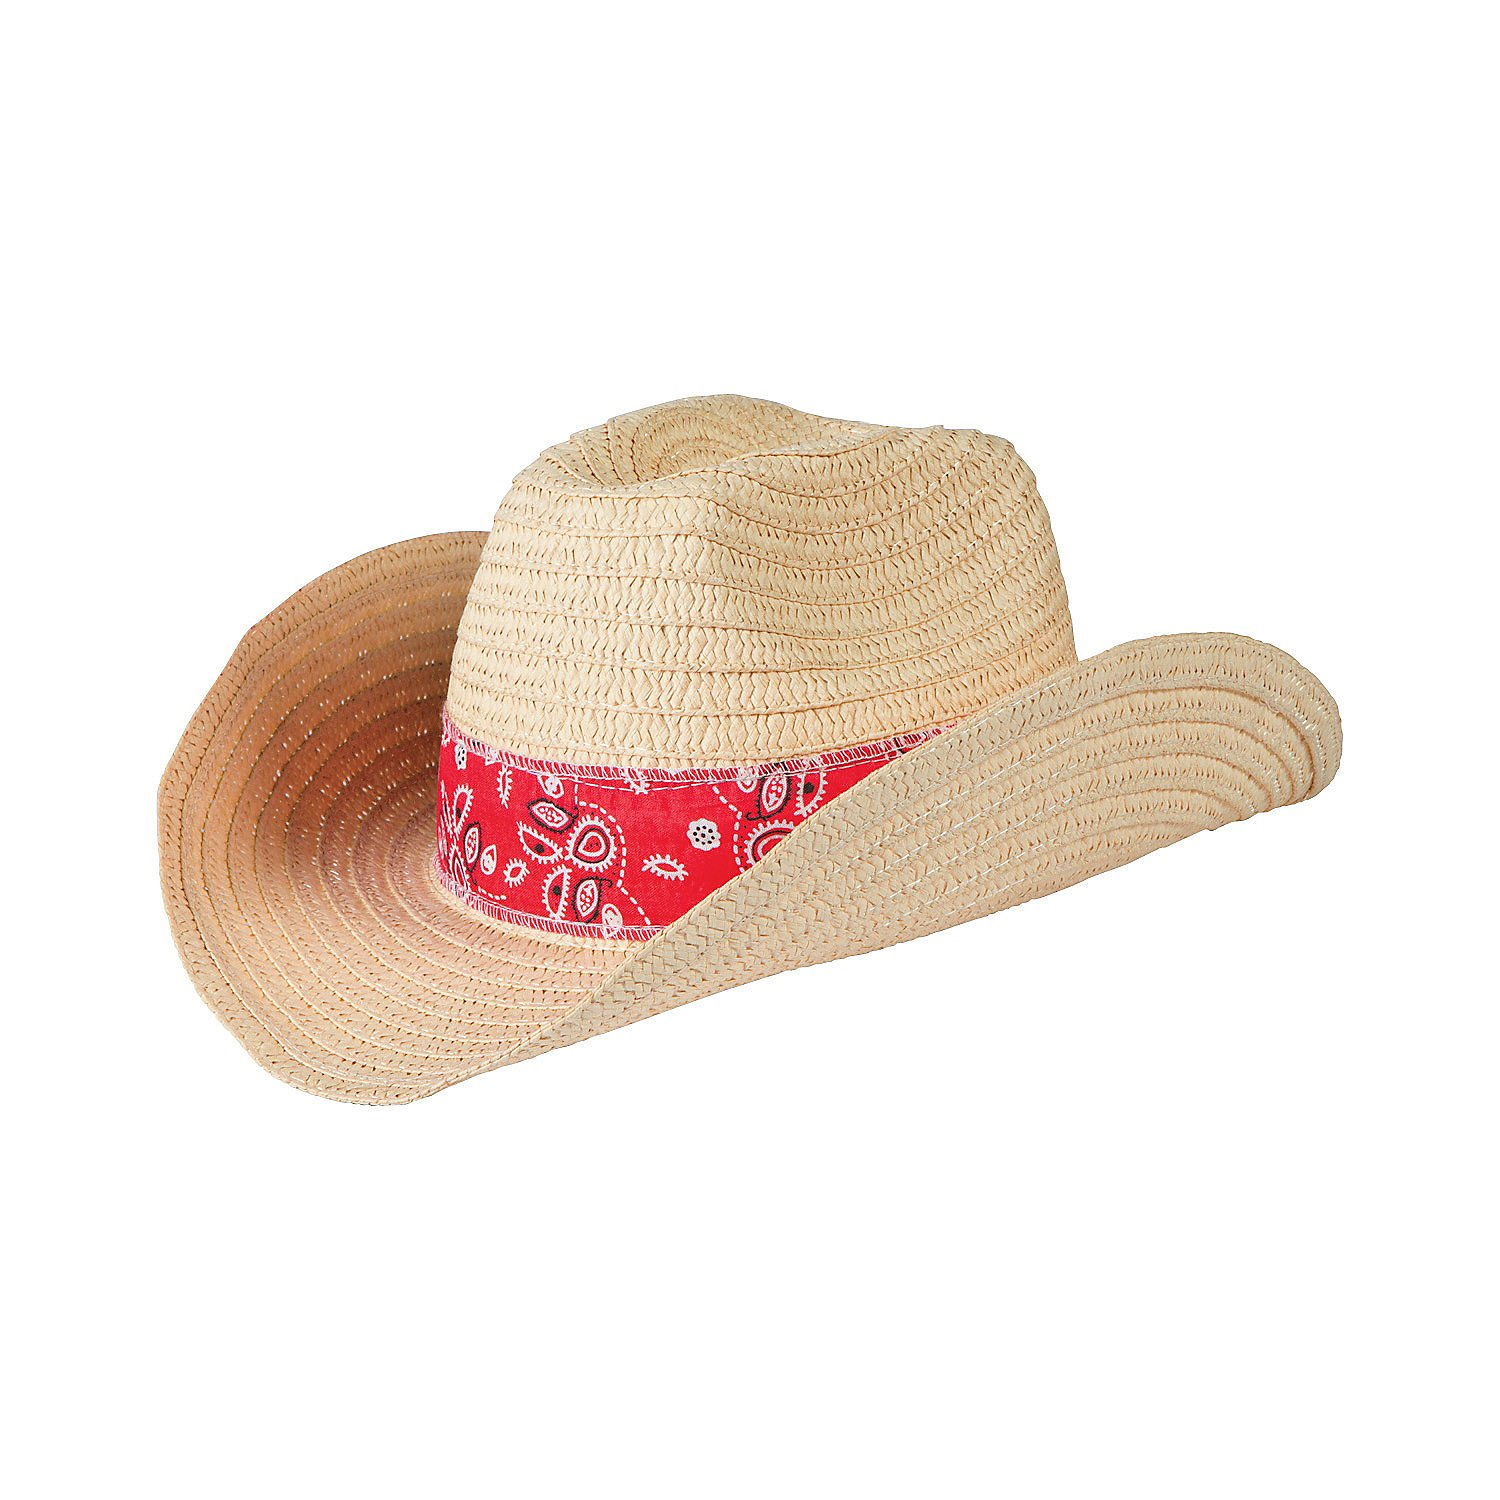 Western Cowboy Hat with Red Bandana (Set of 12) Woven Straw - 24 Inch Circ.